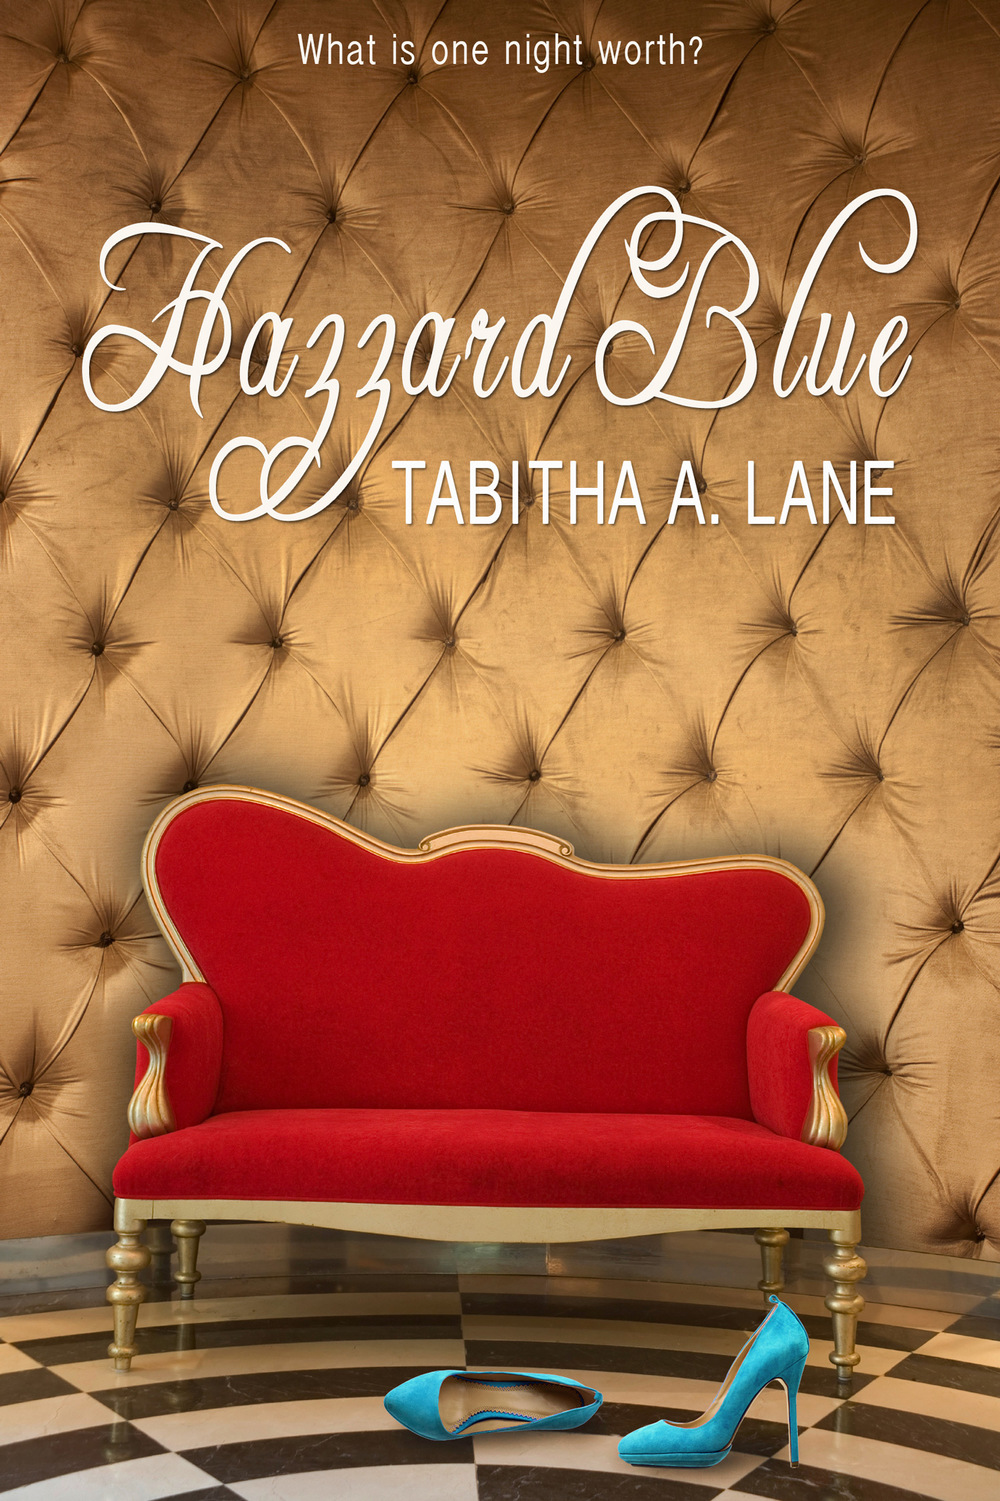 Hazzard-Blue-Cover.jpg